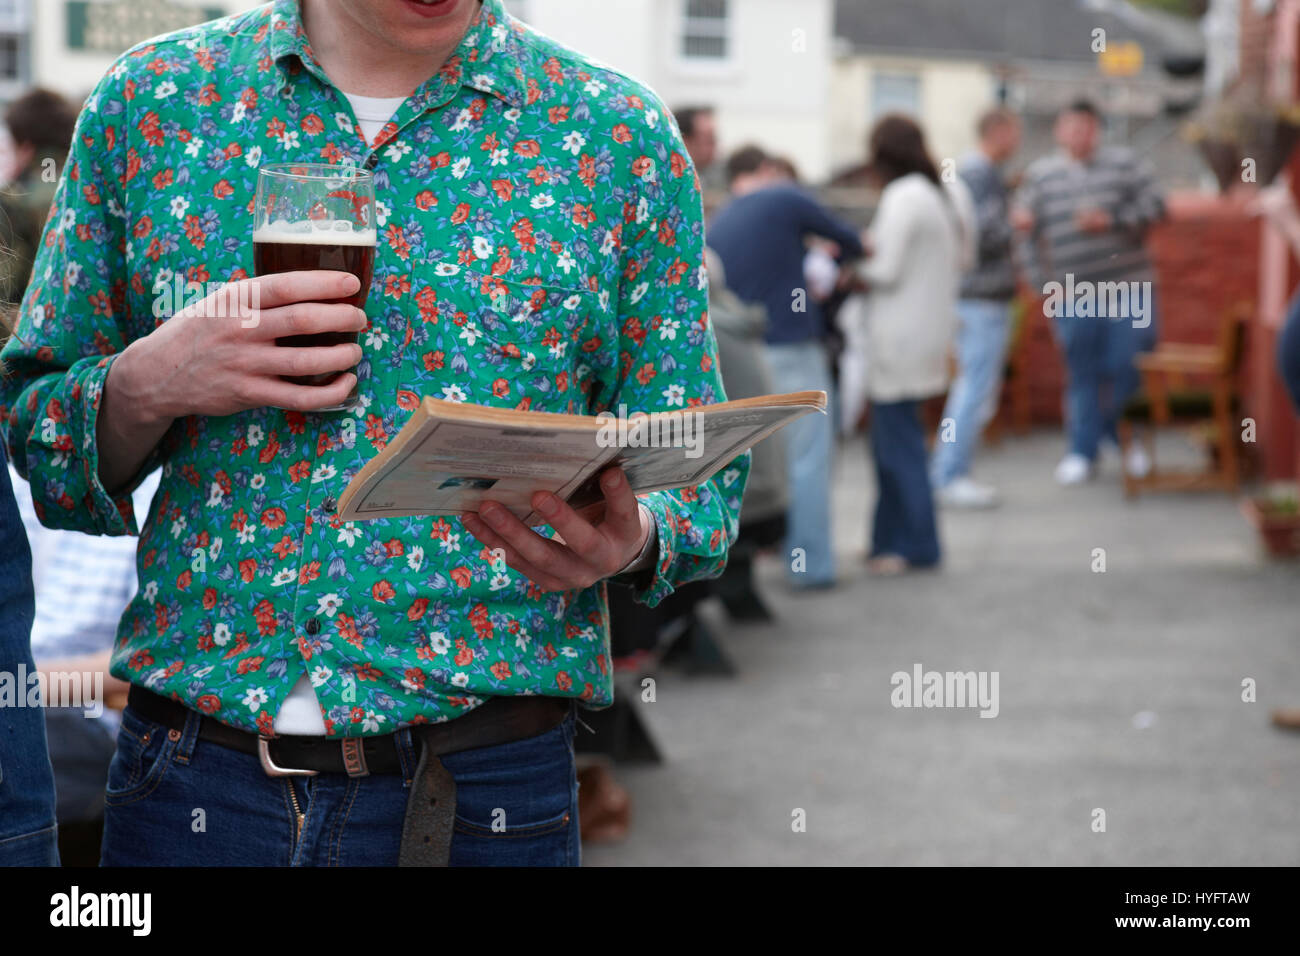 A man wearing a green flowery top reading a book, holding a pint at The Literary Festival, Laugharne, Wales, Uk - Stock Image